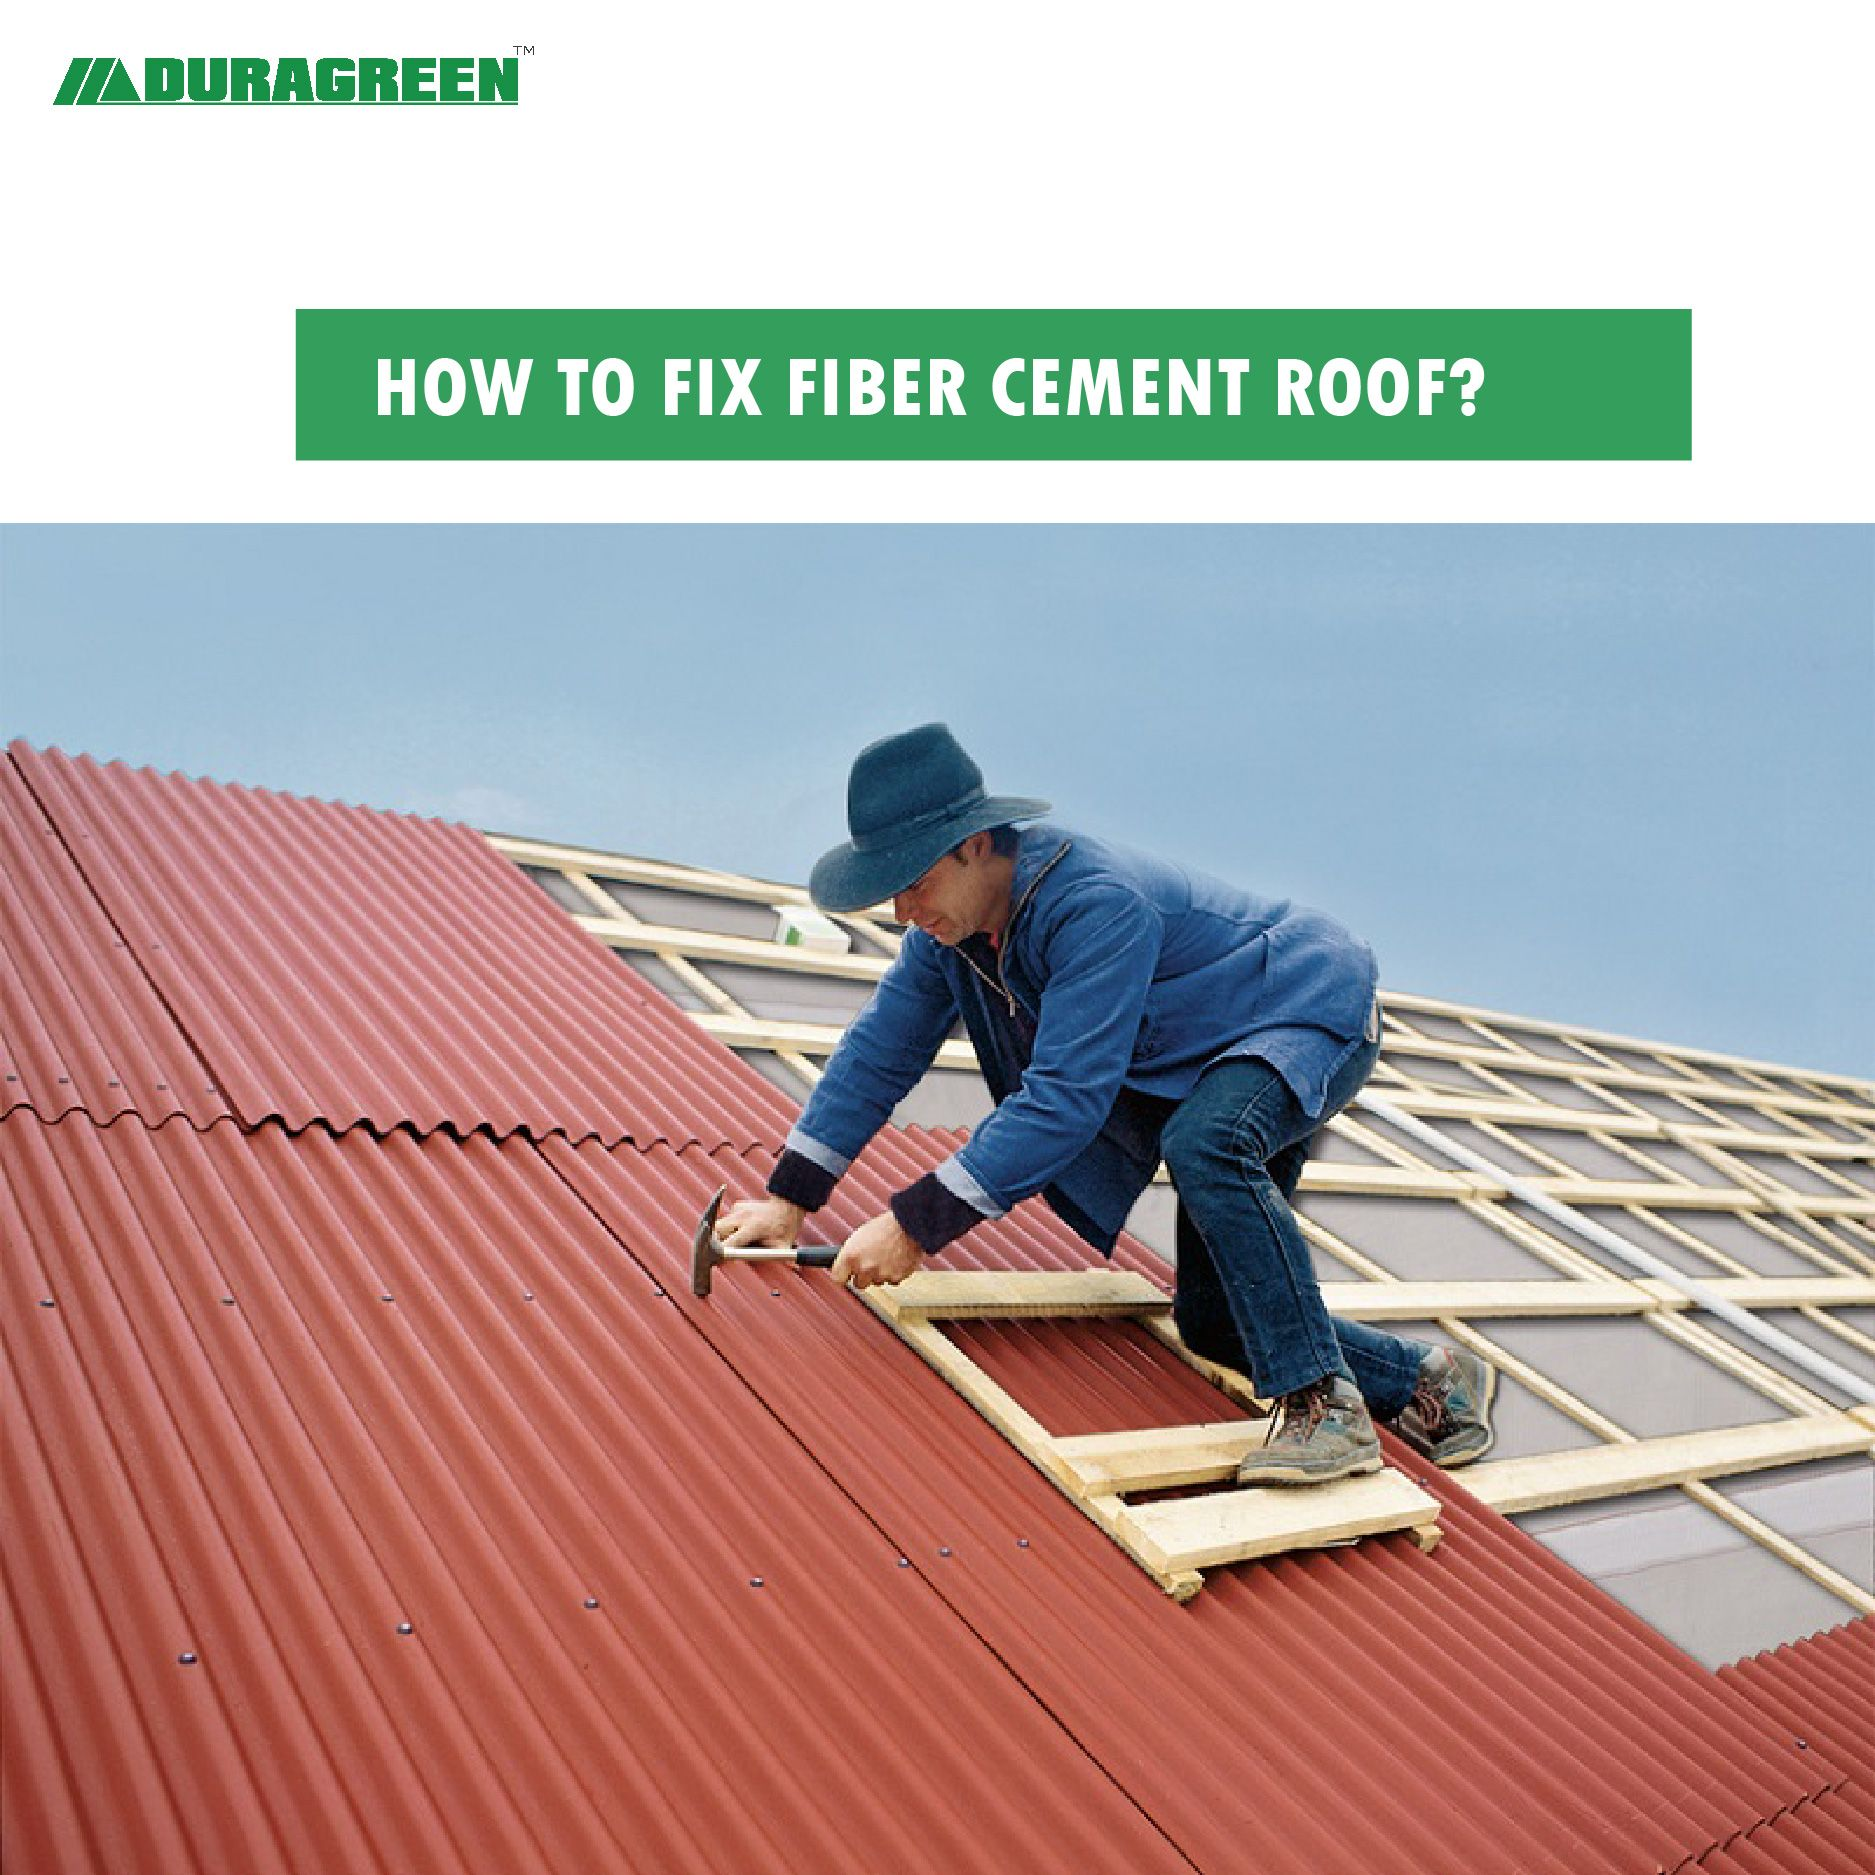 Ten Easy Steps To Fixing A Weather Proof Fiber Cement Roof In 2020 Fiber Cement Roof Corrugated Roofing